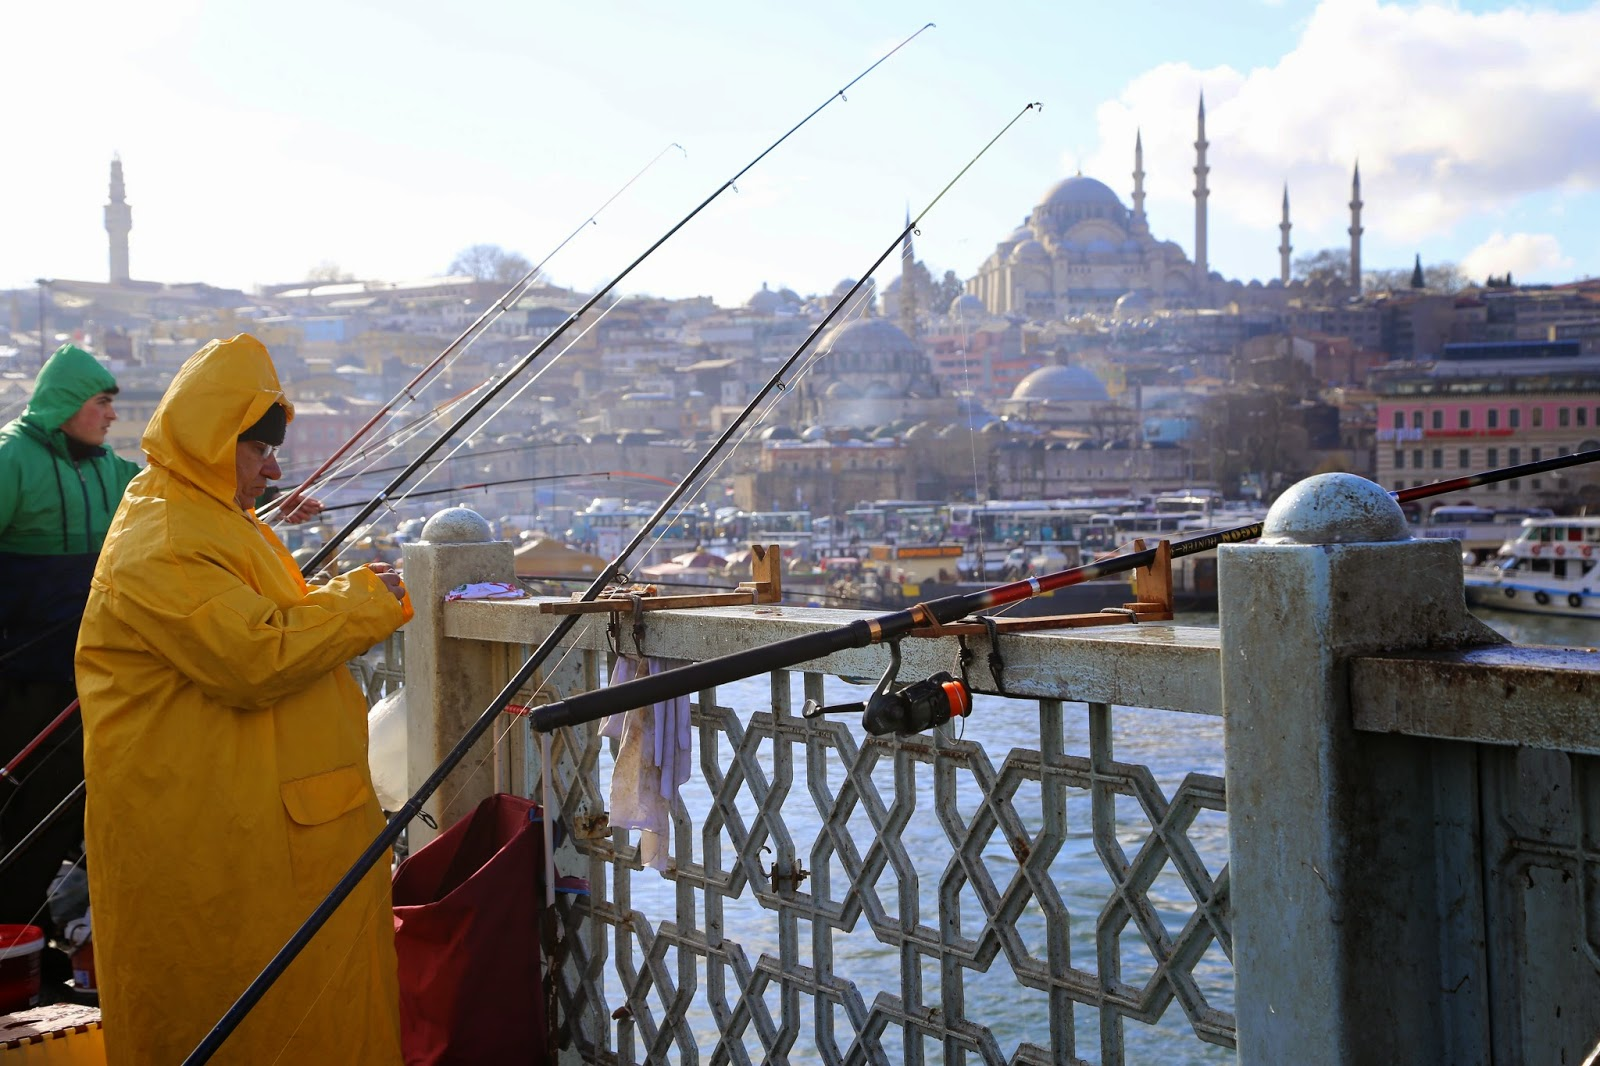 fisherman on the galata bridge, Istanbul